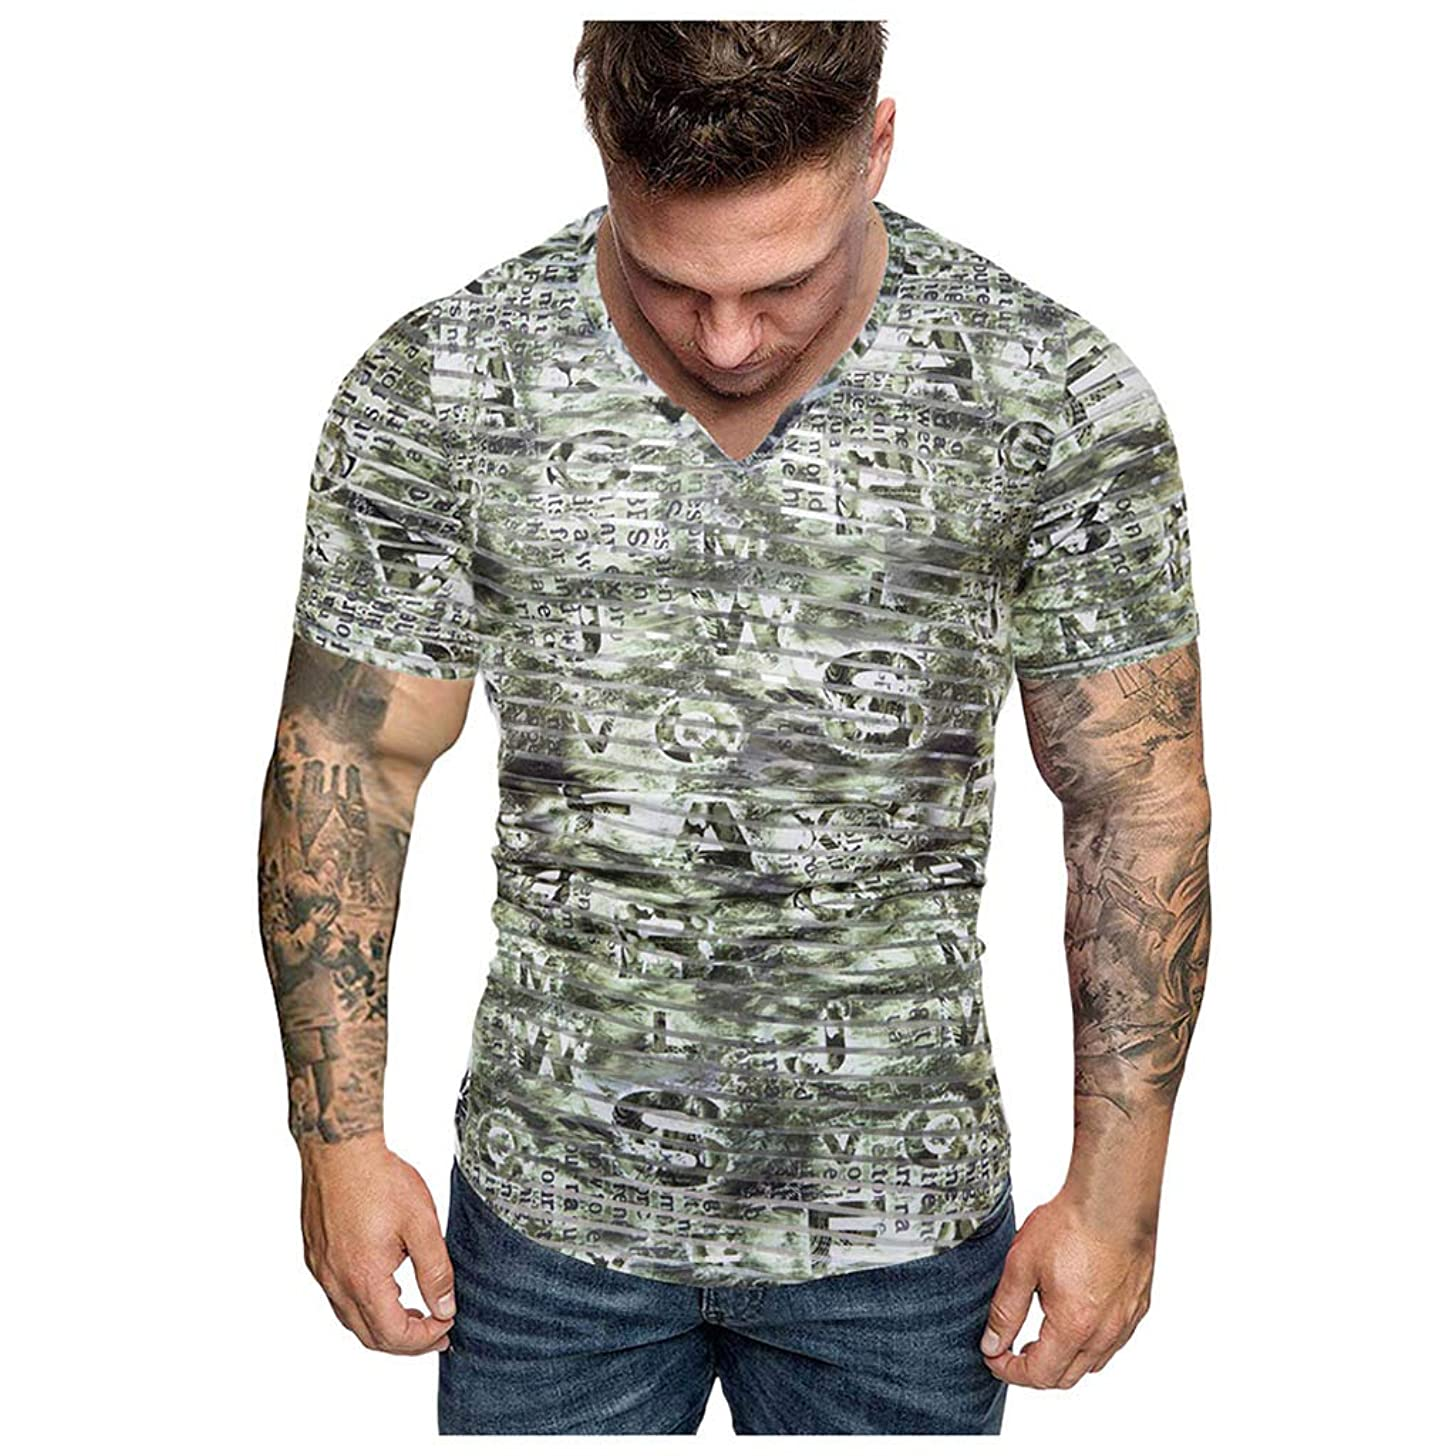 Slim Fit T Shirts for Men Short Sleeve Summer Camouflage Print V-Neck Fit Muscle Sport Top Blouse